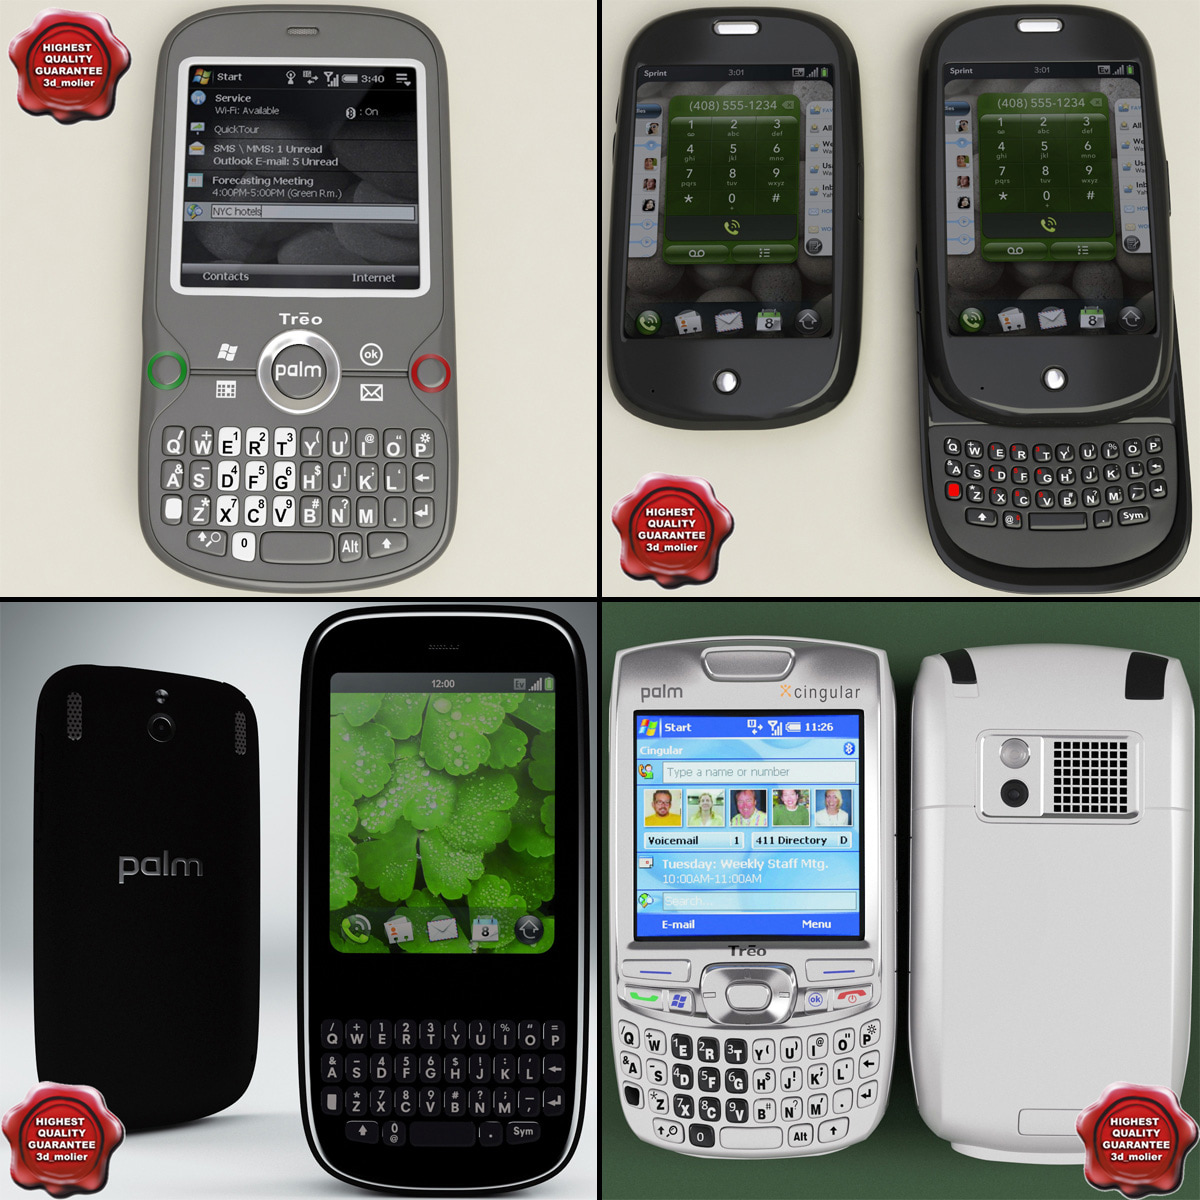 Palm_Phones_Collection_V1_00.jpg